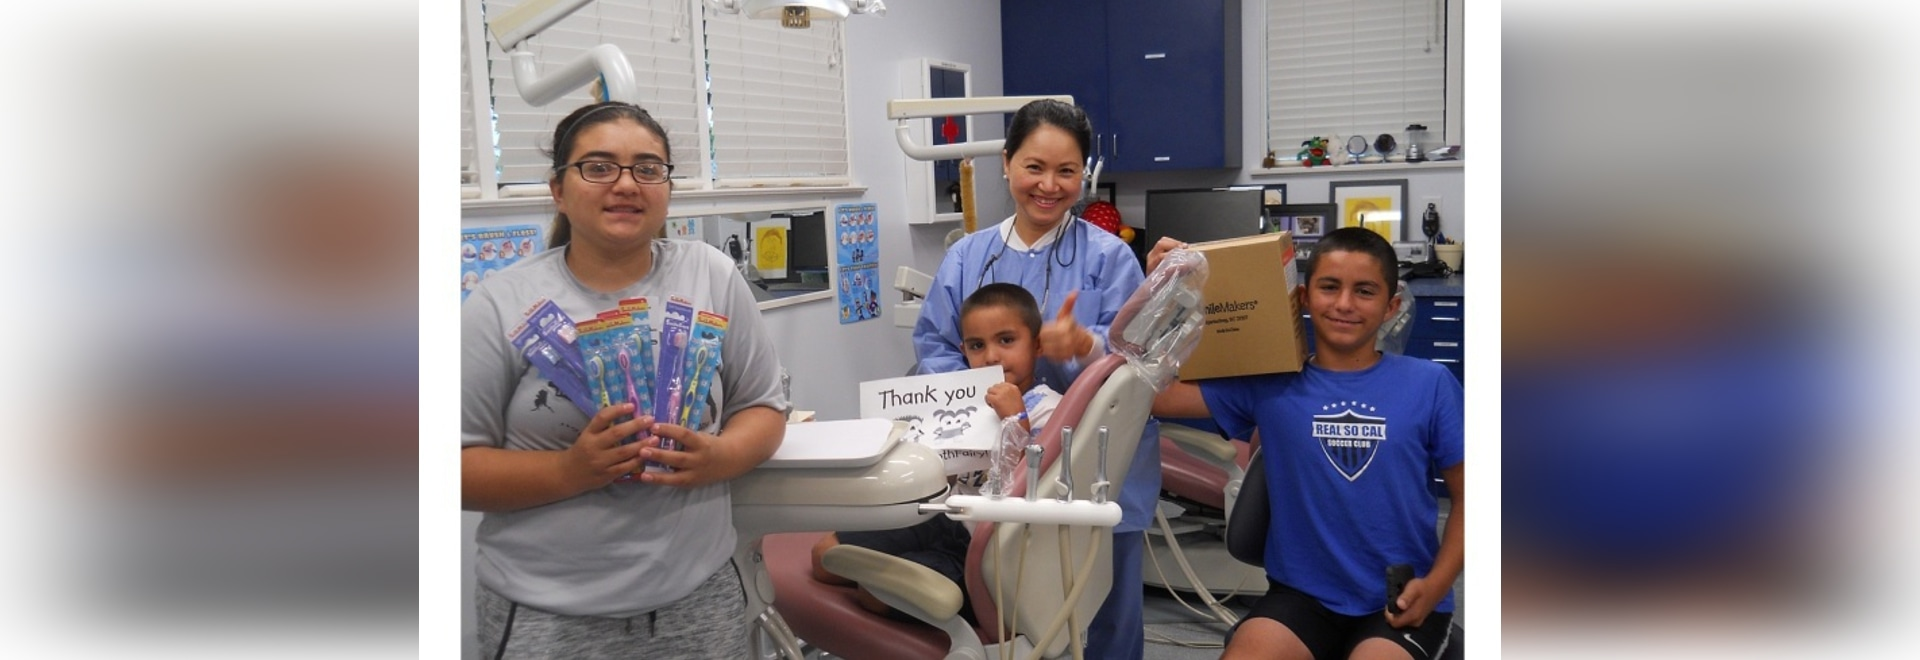 Kids' Community Dental Clinic in Burbank, Calif, received a $5,000 grant from America's ToothFairy.